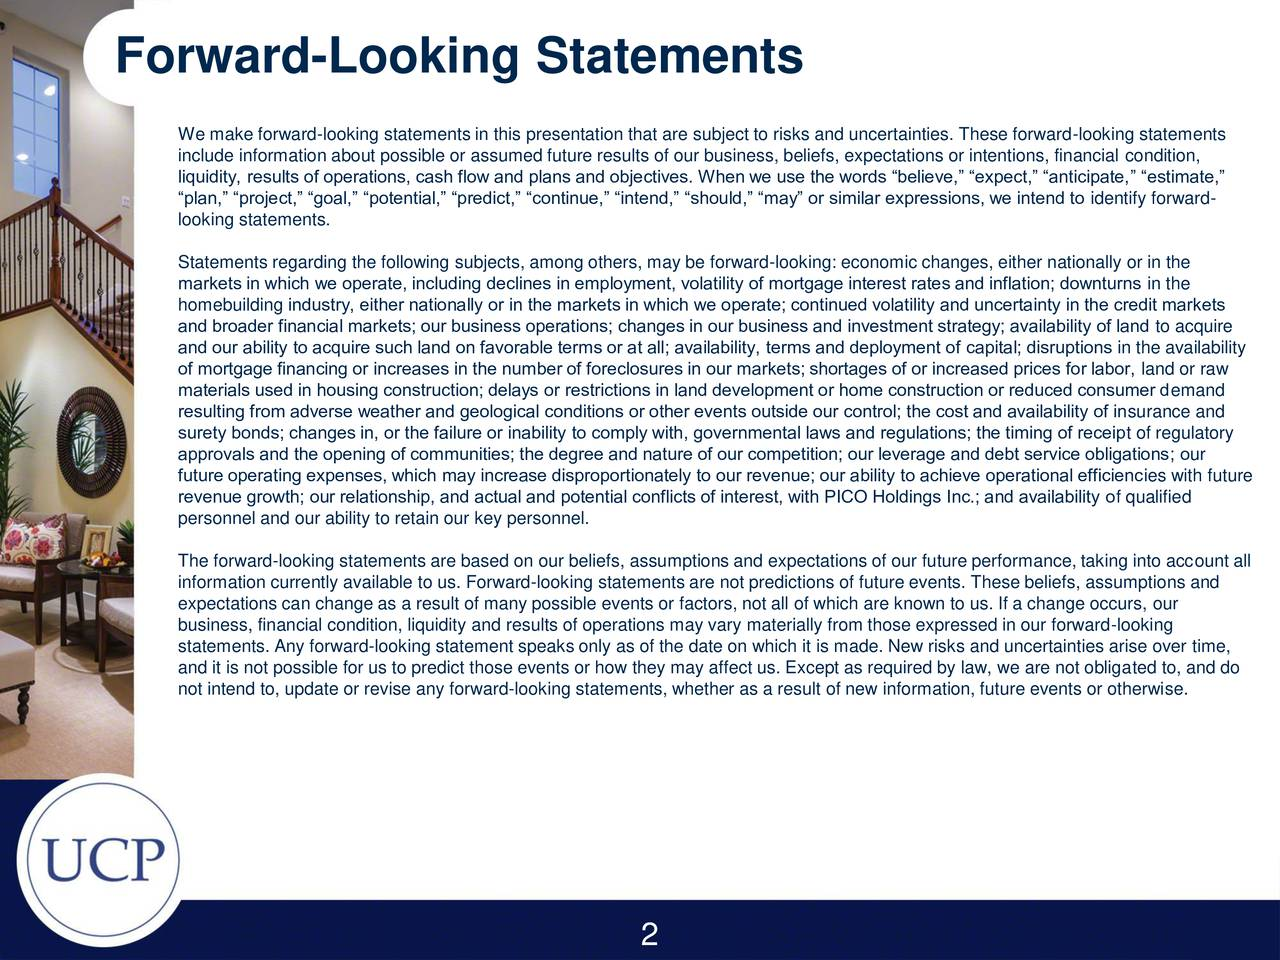 We make forward-looking statements in this presentation that are subject to risks and uncertainties. These forward-looking statements include information about possible or assumed future results of our business, beliefs, expectations or intentions, financial condition, liquidity, results of operations, cash flow and plans and objectives. When we use the words believe, expect, anticipate, estimate, plan, project, goal, potential, predict, continue, intend, should, may or similar expressions, we intend to identify forward- looking statements. Statements regarding the following subjects, among others, may be forward-looking: economic changes, either nationally or in the markets in which we operate, including declines in employment, volatility of mortgage interest rates and inflation downturns in the homebuilding industry, either nationally or in the markets in which we operate continued volatility and uncertainty in the credit markets and broader financial markets our business operations changes in our business and investment strategy availability of land to acquire and our ability to acquire such land on favorable terms or at all availability, terms and deployment of capital disruptions in the availability of mortgage financing or increases in the number of foreclosures in our markets shortages of or increased prices for labor, land or raw materials used in housing construction delays or restrictions in land development or home construction or reduced consumer demand resulting from adverse weather and geological conditions or other events outside our control the cost and availability of insurance and surety bonds changes in, or the failure or inability to comply with, governmental laws and regulations the timing of receipt of regulatory approvals and the opening of communities the degree and nature of our competition our leverage and debt service obligations our future operating expenses, which may increase disproportionately to our revenue our ability to achieve oper